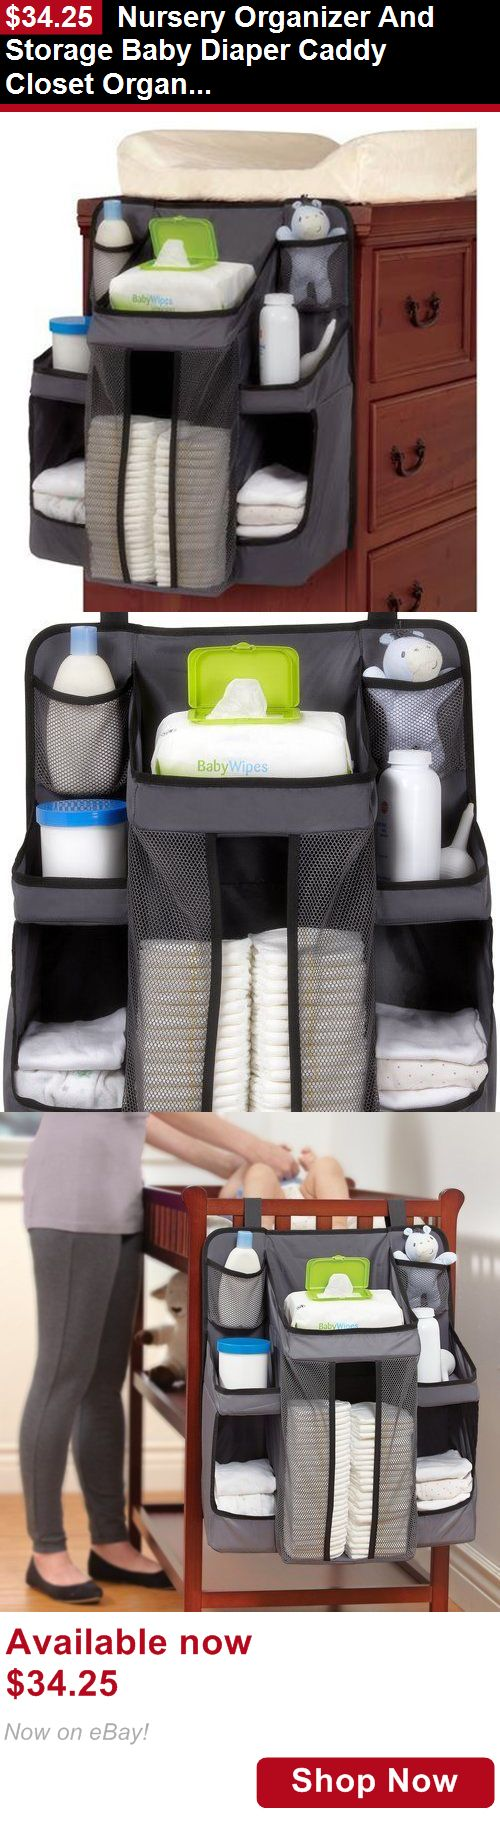 Baby Boxes And Storage: Nursery Organizer And Storage Baby Diaper Caddy Closet Organization System BUY IT NOW ONLY: $34.25